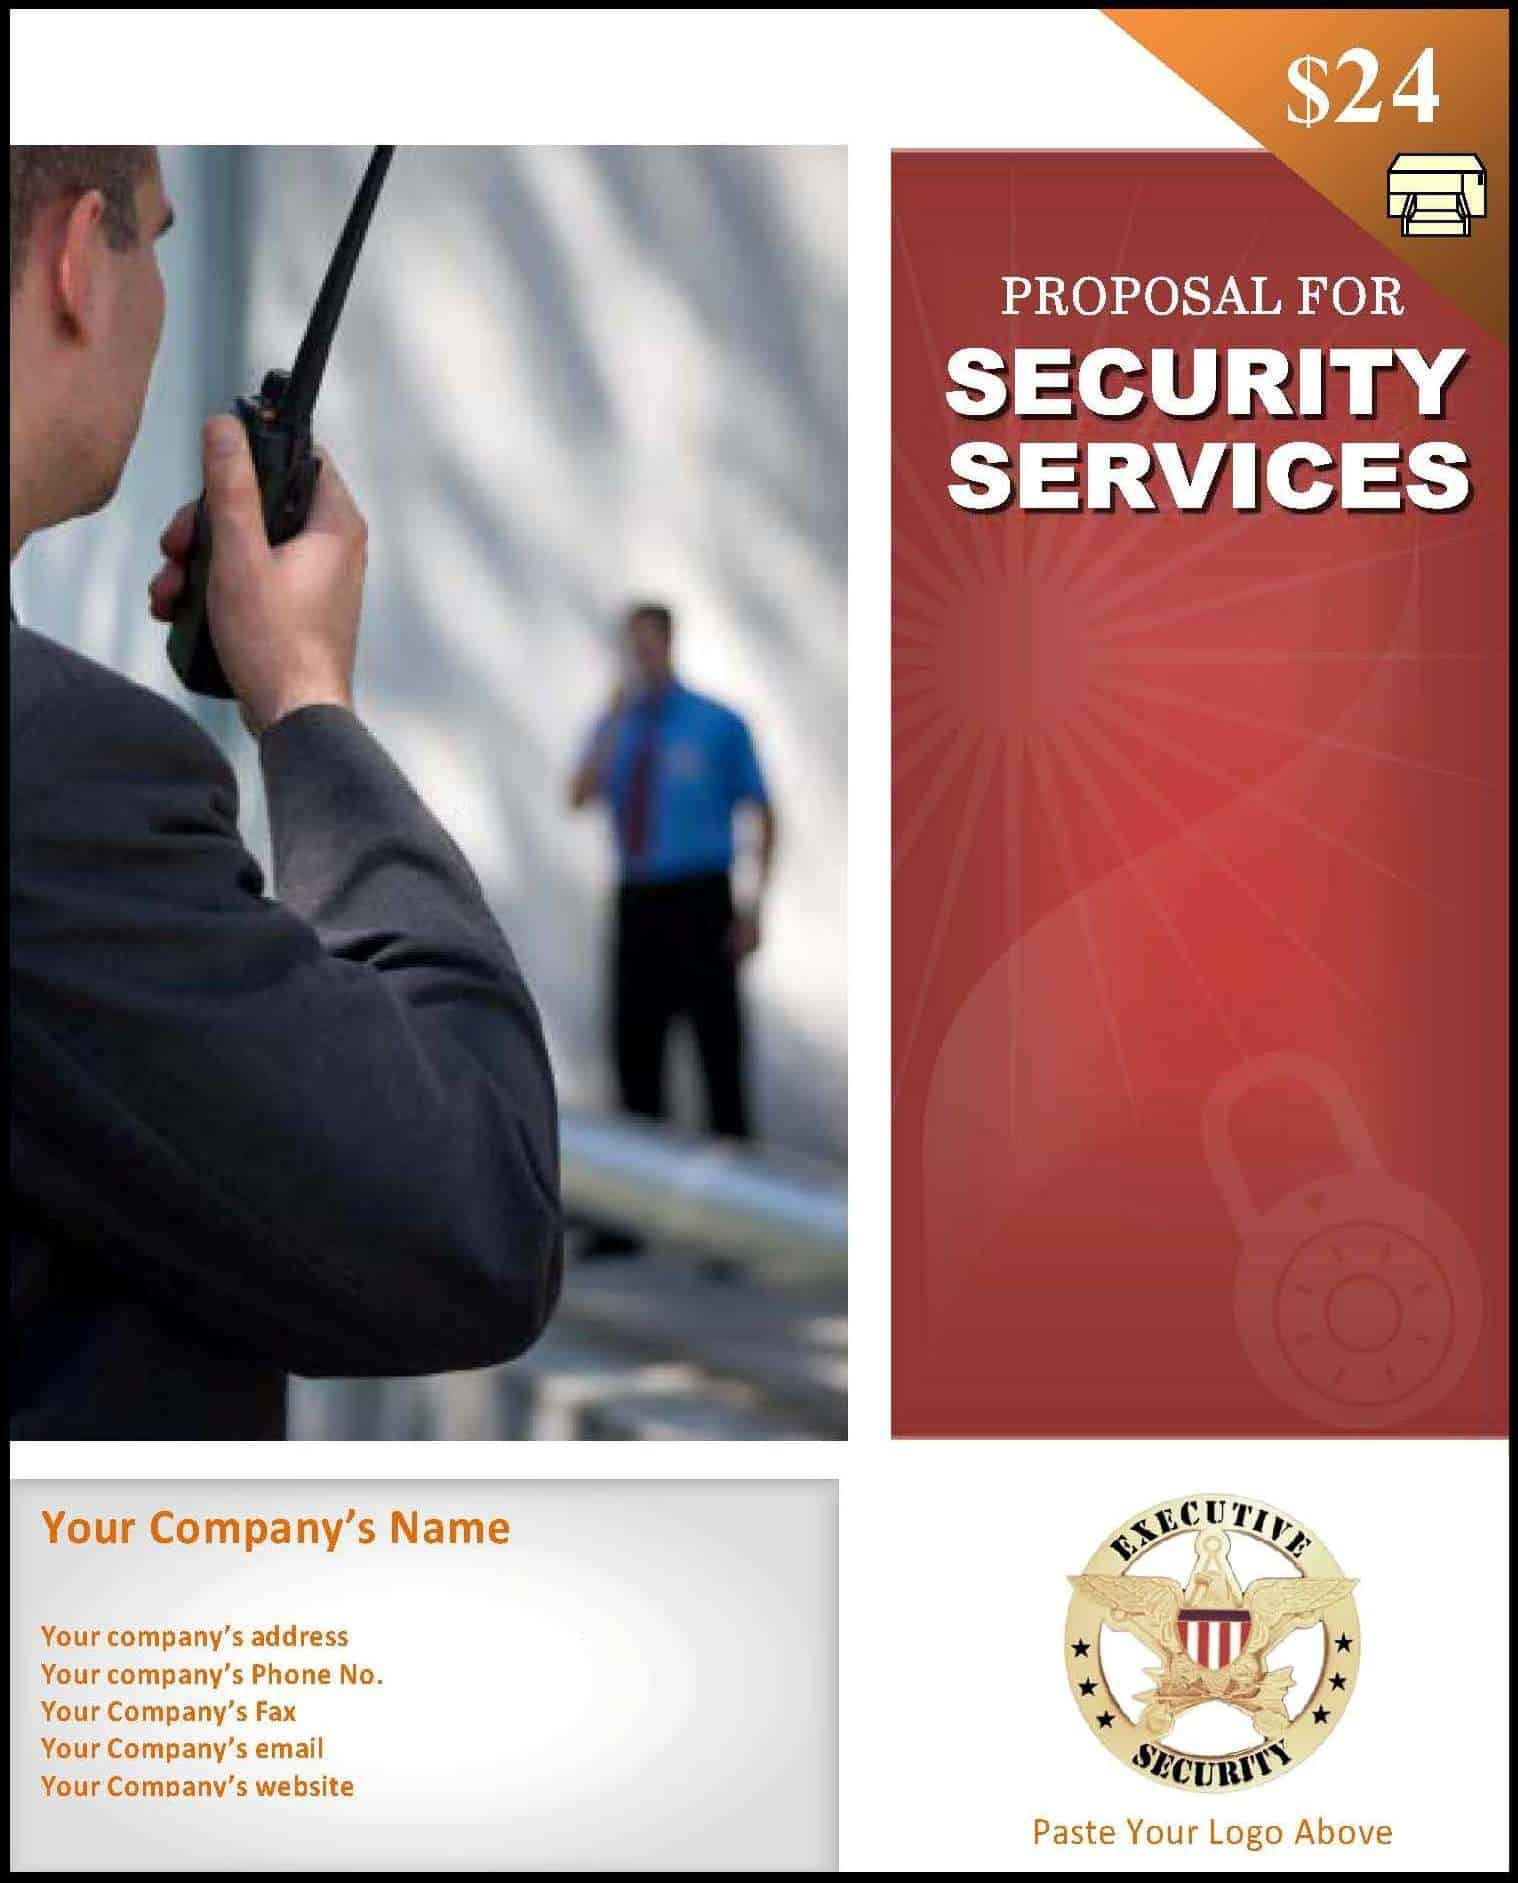 Security proposal template startasecuritycompany security services proposal template saigontimesfo